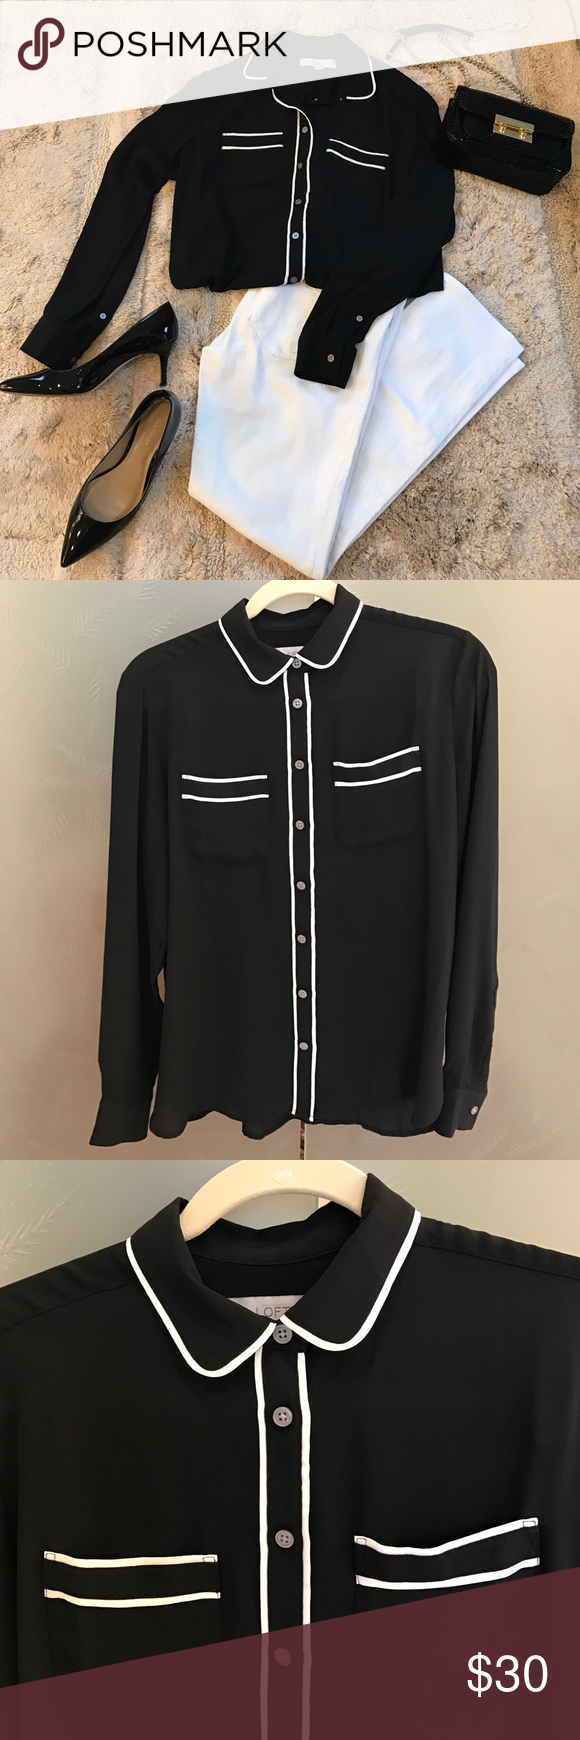 LOFT Shirt This button-front shirt is a classic! Black with white piping detail. Two front pockets. 100% polyester. LOFT Tops Blouses